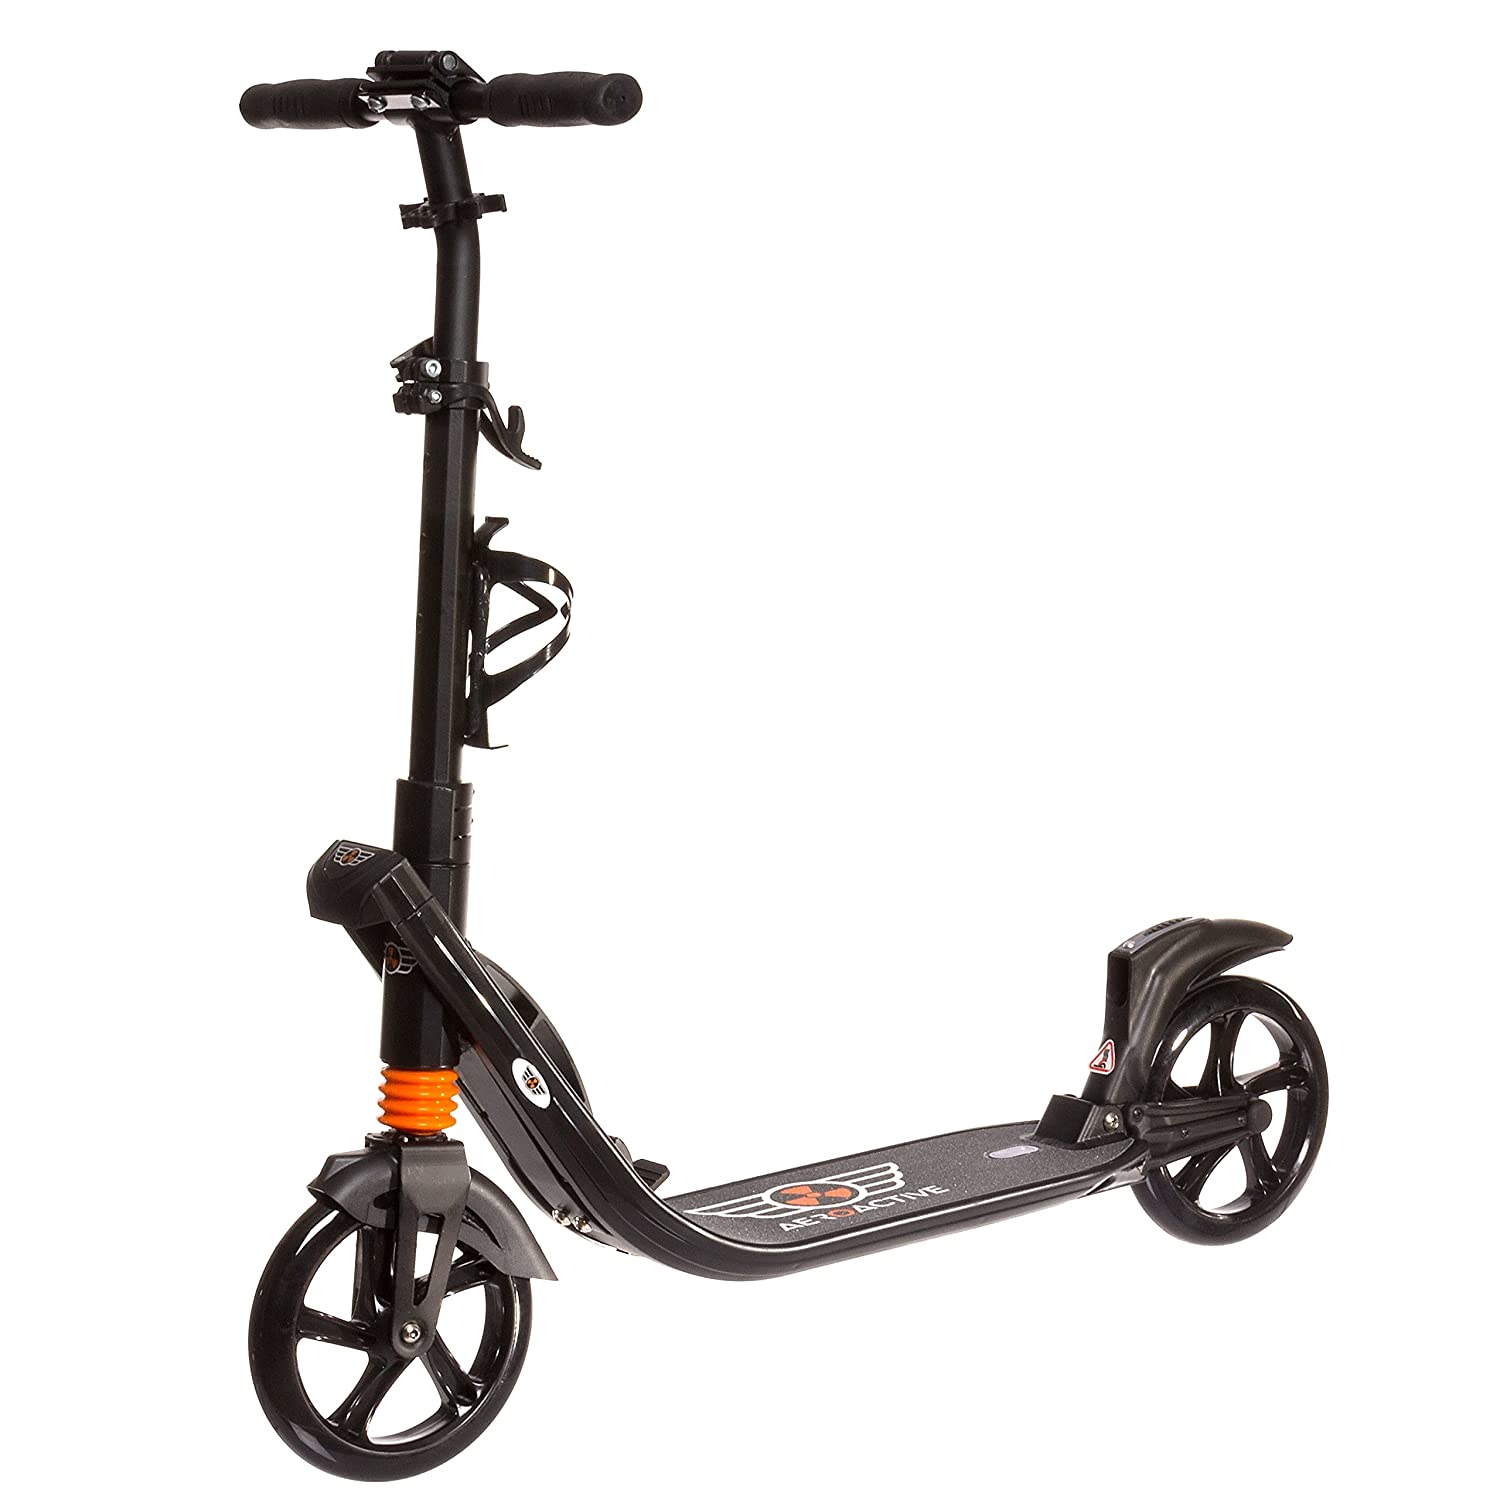 Amazoncom Aeroactive Adults Teens Scooter with Dual Suspension